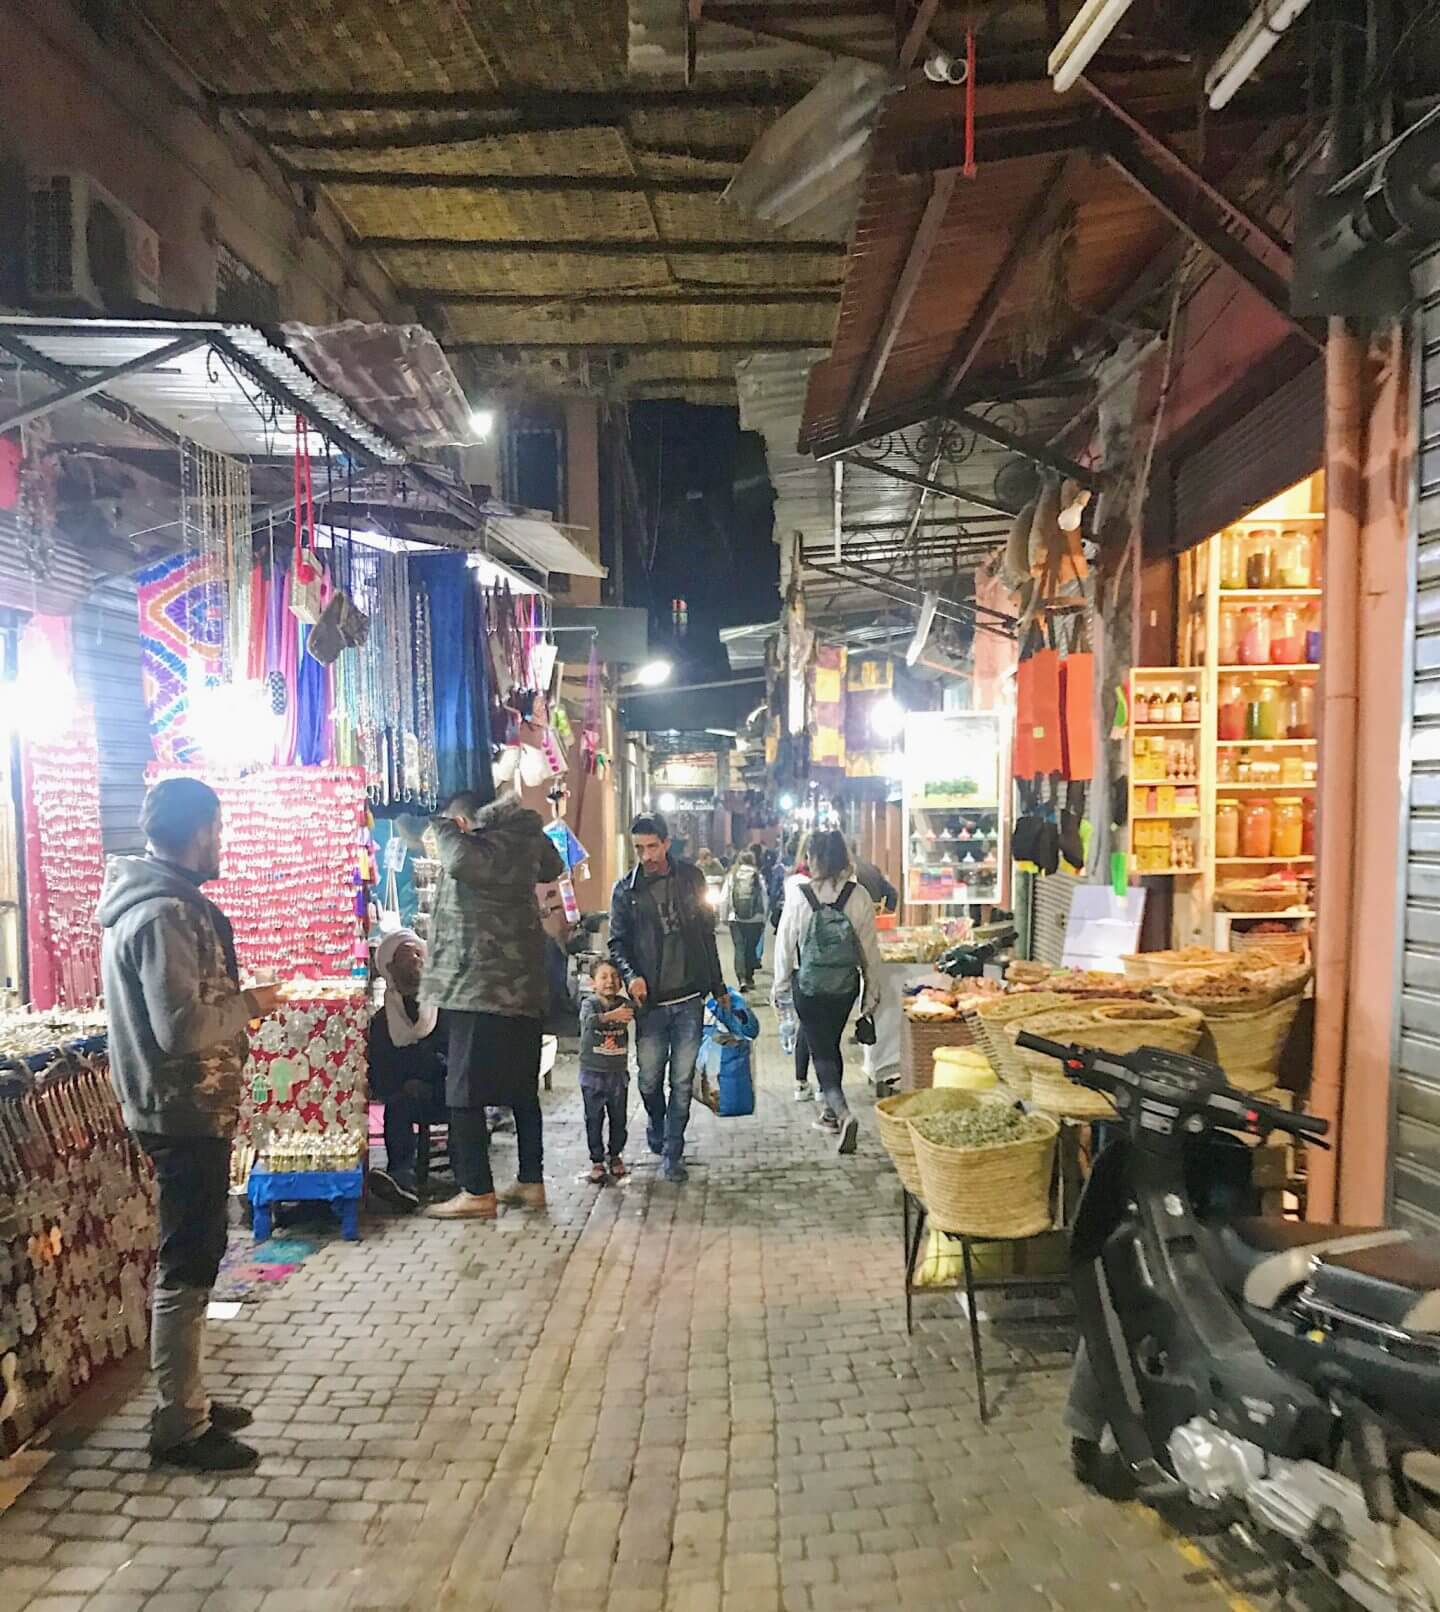 image of the souks in Marrakech